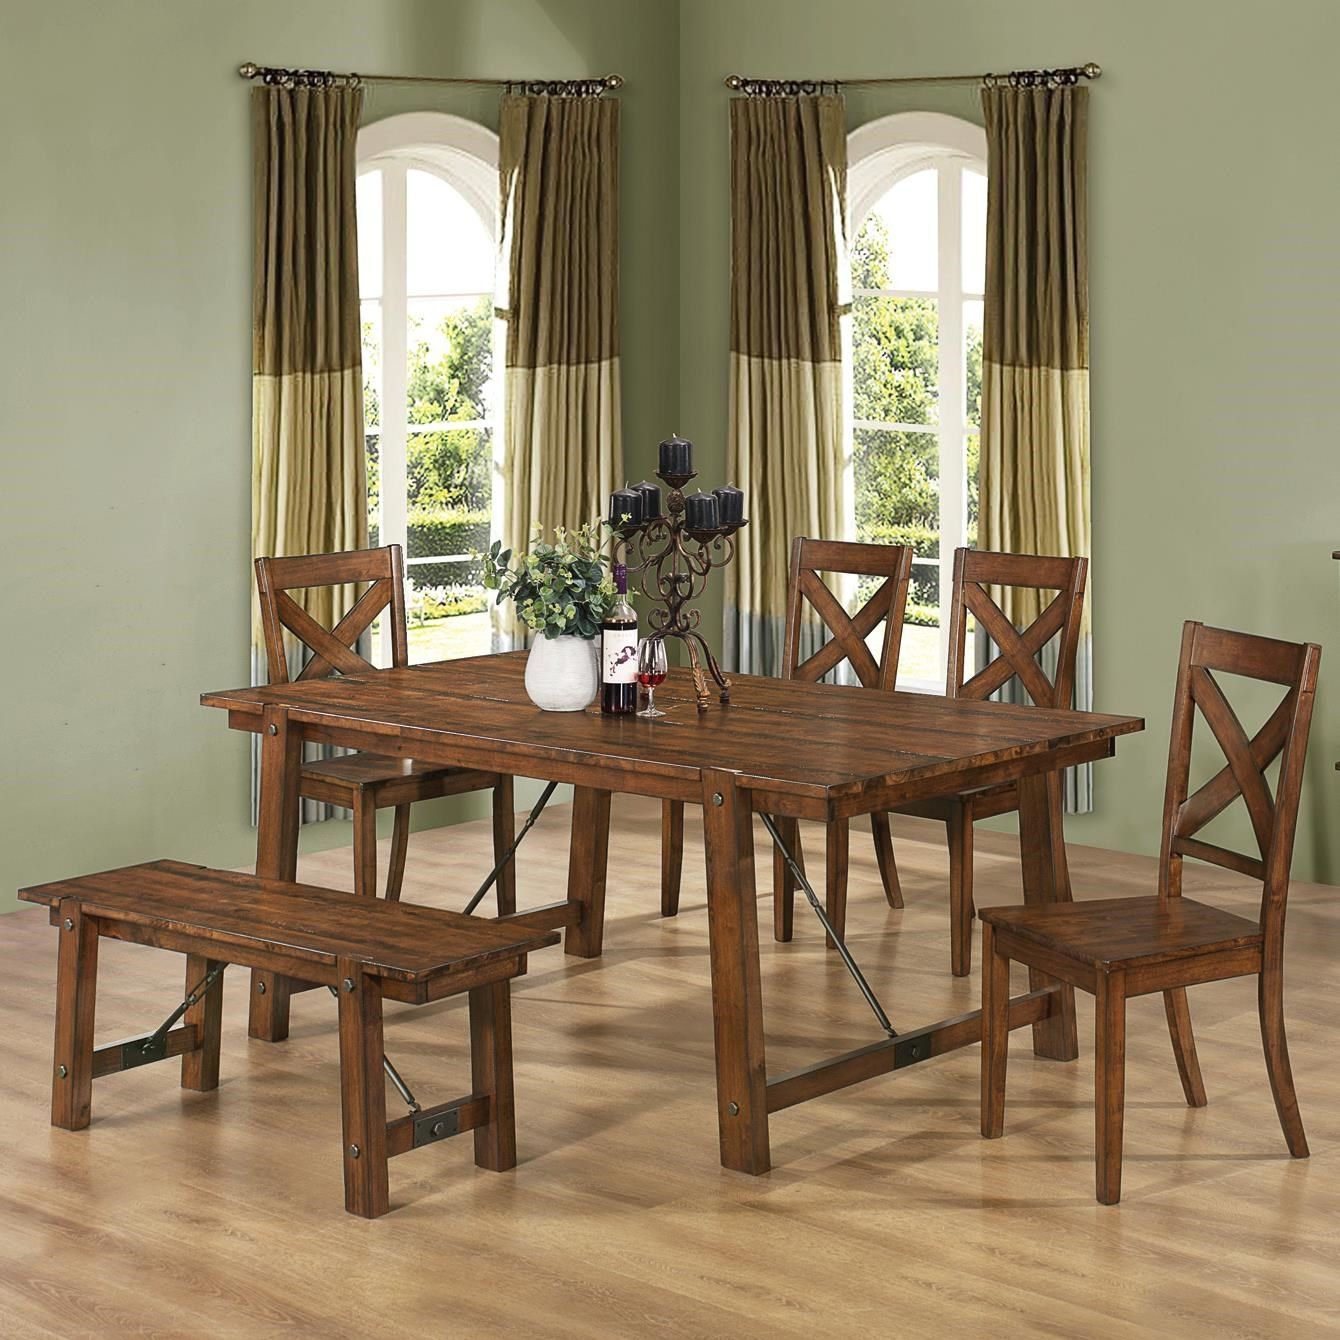 Coaster Furniture 9 Lawson Dining Bench   Country dining ...